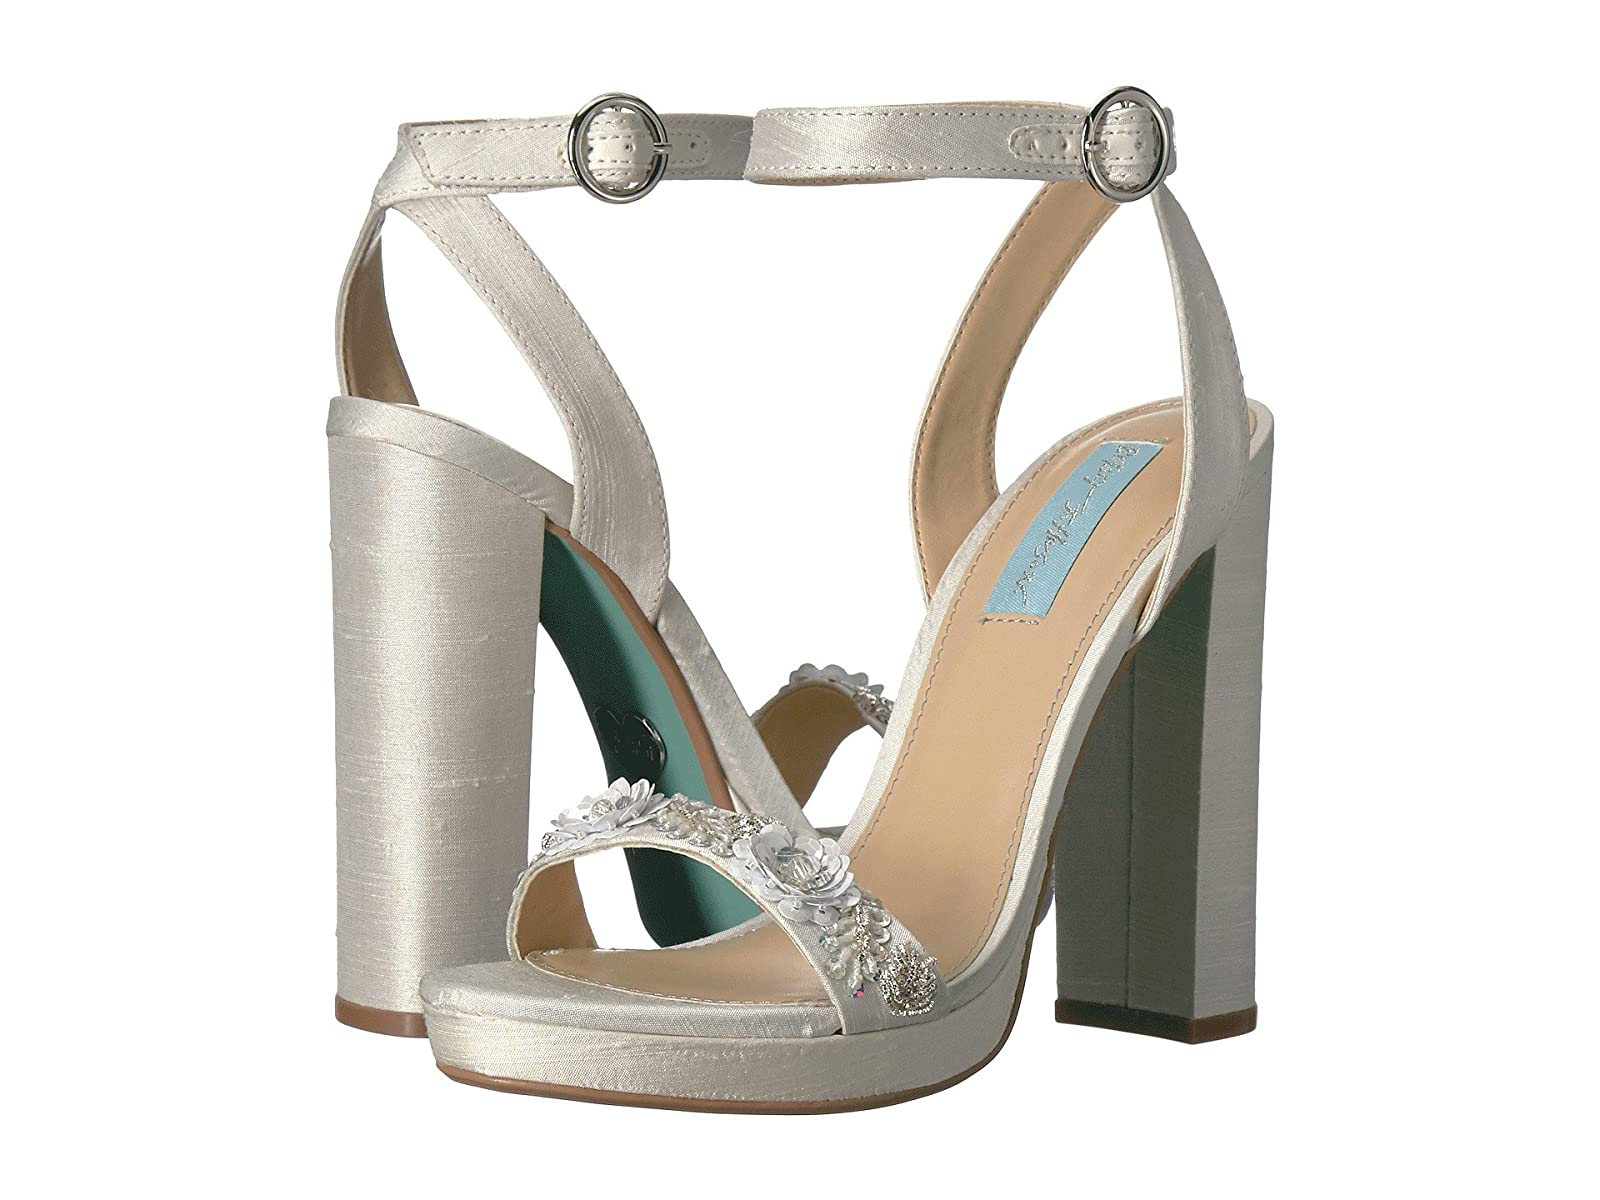 Blue by Betsey Johnson LakenCheap and distinctive eye-catching shoes